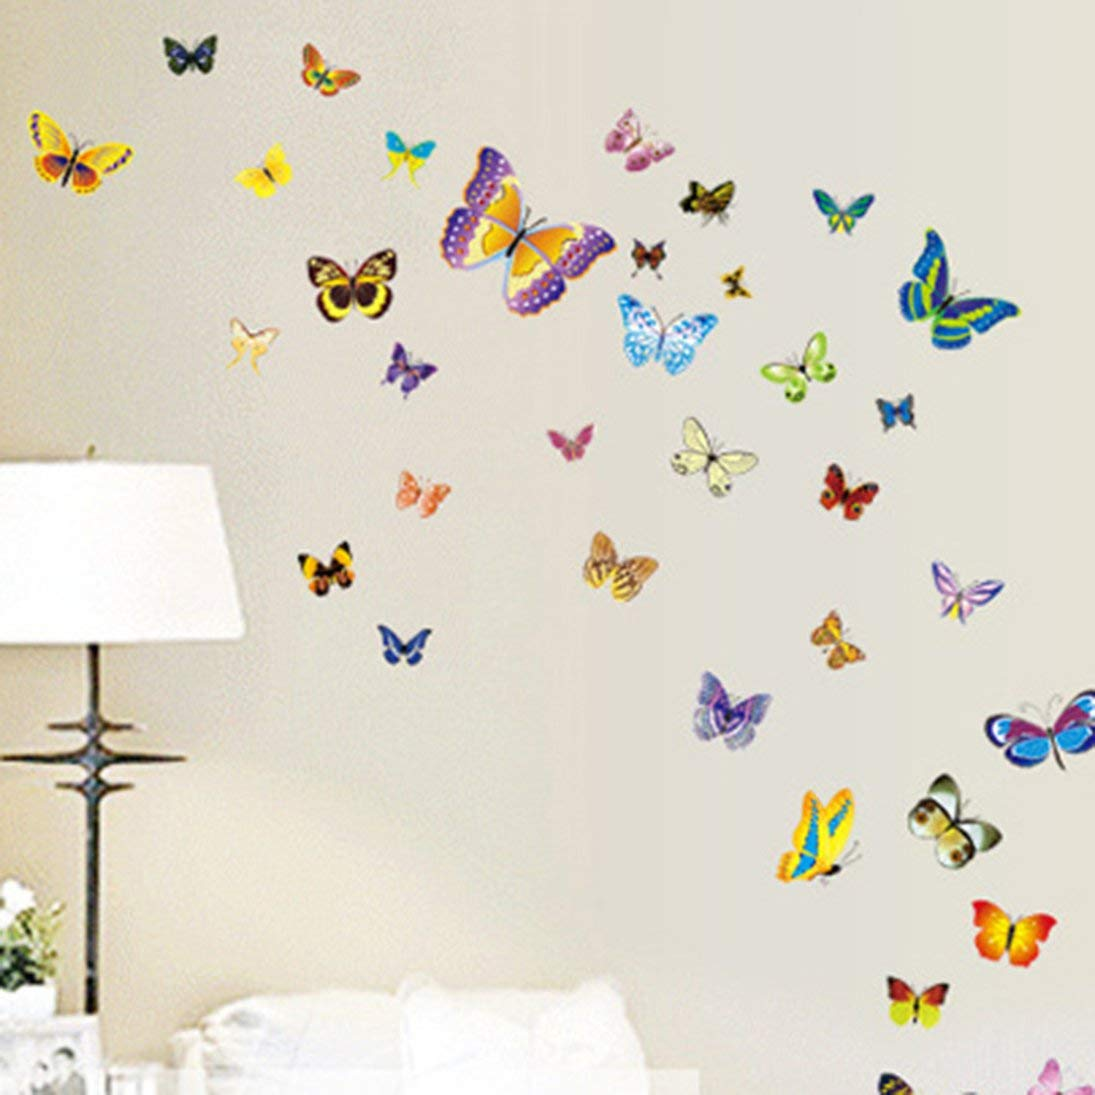 3d butterfly wall stckers wall decors wall art wall.htm amazon com baynne 50 pcs butterfly wall decor 3d butterfly wall  baynne 50 pcs butterfly wall decor